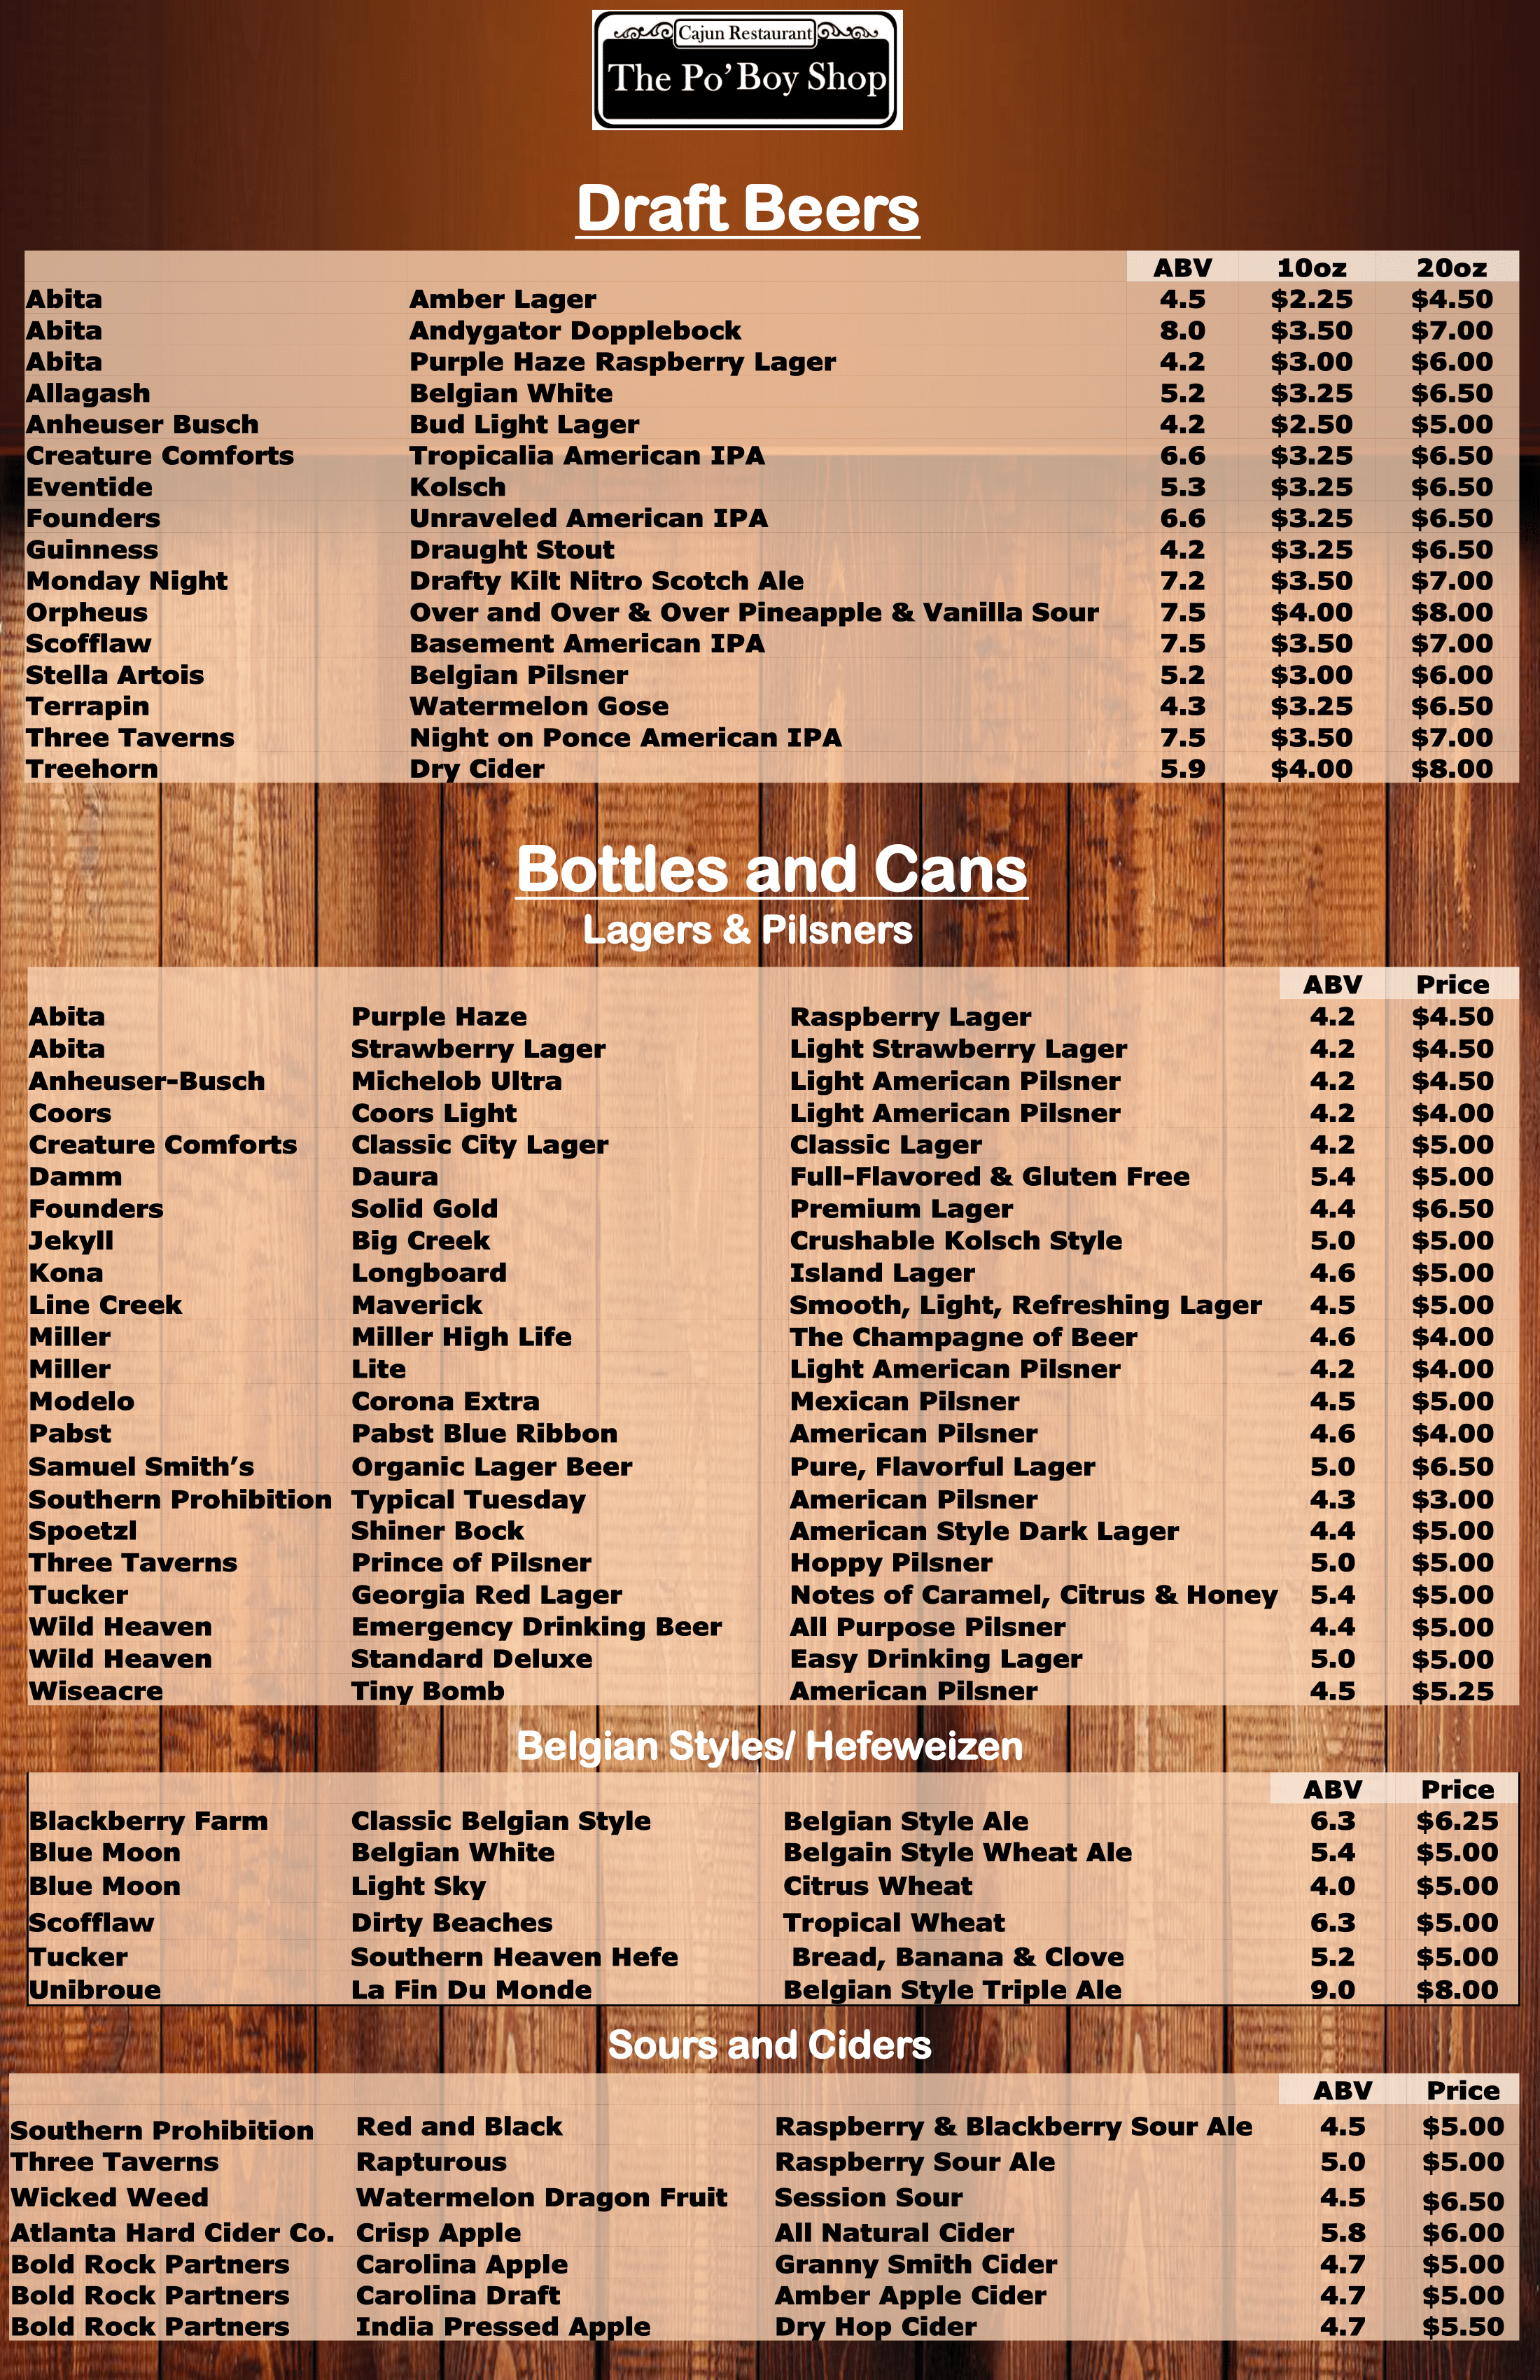 Draft Beers: ABV 10oz/20oz. Abita Amber Lager 4.5 $2.25 $4.50 Abita Andygator Dopplebock 8.0 $3.50 $7.00 Abita Purple Haze Raspberry Lager 4.2 $3.00 $6.00 Allagash Belgian White 5.2 $3.25 $6.50 Anheuser Busch Bud Light Lager 4.2 $2.50 $5.00 Creature Comforts Tropicalia American IPA 6.6 $3.25 $6.50 Eventide Kolsch 5.3 $3.25 $6.50 Founders Unraveled American IPA 6.6 $3.25 $6.50 Guinness Draught Stout 4.2 $3.25 $6.50 Monday Night Drafty Kilt Nitro Scotch Ale 7.2 $3.50 $7.00 Orpheus Over and Over & Over Pineapple & Vanilla Sour 7.5 $4.00 $8.00 Scofflaw Basement American IPA 7.5 $3.50 $7.00 Stella Artois Belgian Pilsner 5.2 $3.00 $6.00 Terrapin Watermelon Gose 4.3 $3.25 $6.50 Three Taverns Night on Ponce American IPA 7.5 $3.50 $7.00 Treehorn Dry Cider 5.9 $4.00 $8.00. Bottles and cans (lagers and pilsners) ABV Price Abita Purple Haze Raspberry Lager 4.2 $4.50 Abita Strawberry Lager Light Strawberry Lager 4.2 $4.50 Anheuser-Busch Michelob Ultra Light American Pilsner 4.2 $4.50 Coors Coors Light Light American Pilsner 4.2 $4.00 Creature Comforts Classic City Lager Classic Lager 4.2 $5.00 Damm Daura Full-Flavored & Gluten Free 5.4 $5.00 Founders Solid Gold Premium Lager 4.4 $6.50 Jekyll Big Creek Crushable Kolsch Style 5.0 $5.00 Kona Longboard Island Lager 4.6 $5.00 Line Creek Maverick Smooth, Light, Refreshing Lager 4.5 $5.00 Miller Miller High Life The Champagne of Beer 4.6 $4.00 Miller Lite Light American Pilsner 4.2 $4.00 Modelo Corona Extra Mexican Pilsner 4.5 $5.00 Pabst Pabst Blue Ribbon American Pilsner 4.6 $4.00 Samuel Smith's Organic Lager Beer Pure, Flavorful Lager 5.0 $6.50 Southern Prohibition Typical Tuesday American Pilsner 4.3 $3.00 Spoetzl Shiner Bock American Style Dark Lager 4.4 $5.00 Three Taverns Prince of Pilsner Hoppy Pilsner 5.0 $5.00 Tucker Georgia Red Lager Notes of Caramel, Citrus & Honey 5.4 $5.00 Wild Heaven Emergency Drinking Beer All Purpose Pilsner 4.4 $5.00 Wild Heaven Standard Deluxe Easy Drinking Lager 5.0 $5.00 Wiseacre Tiny Bomb American